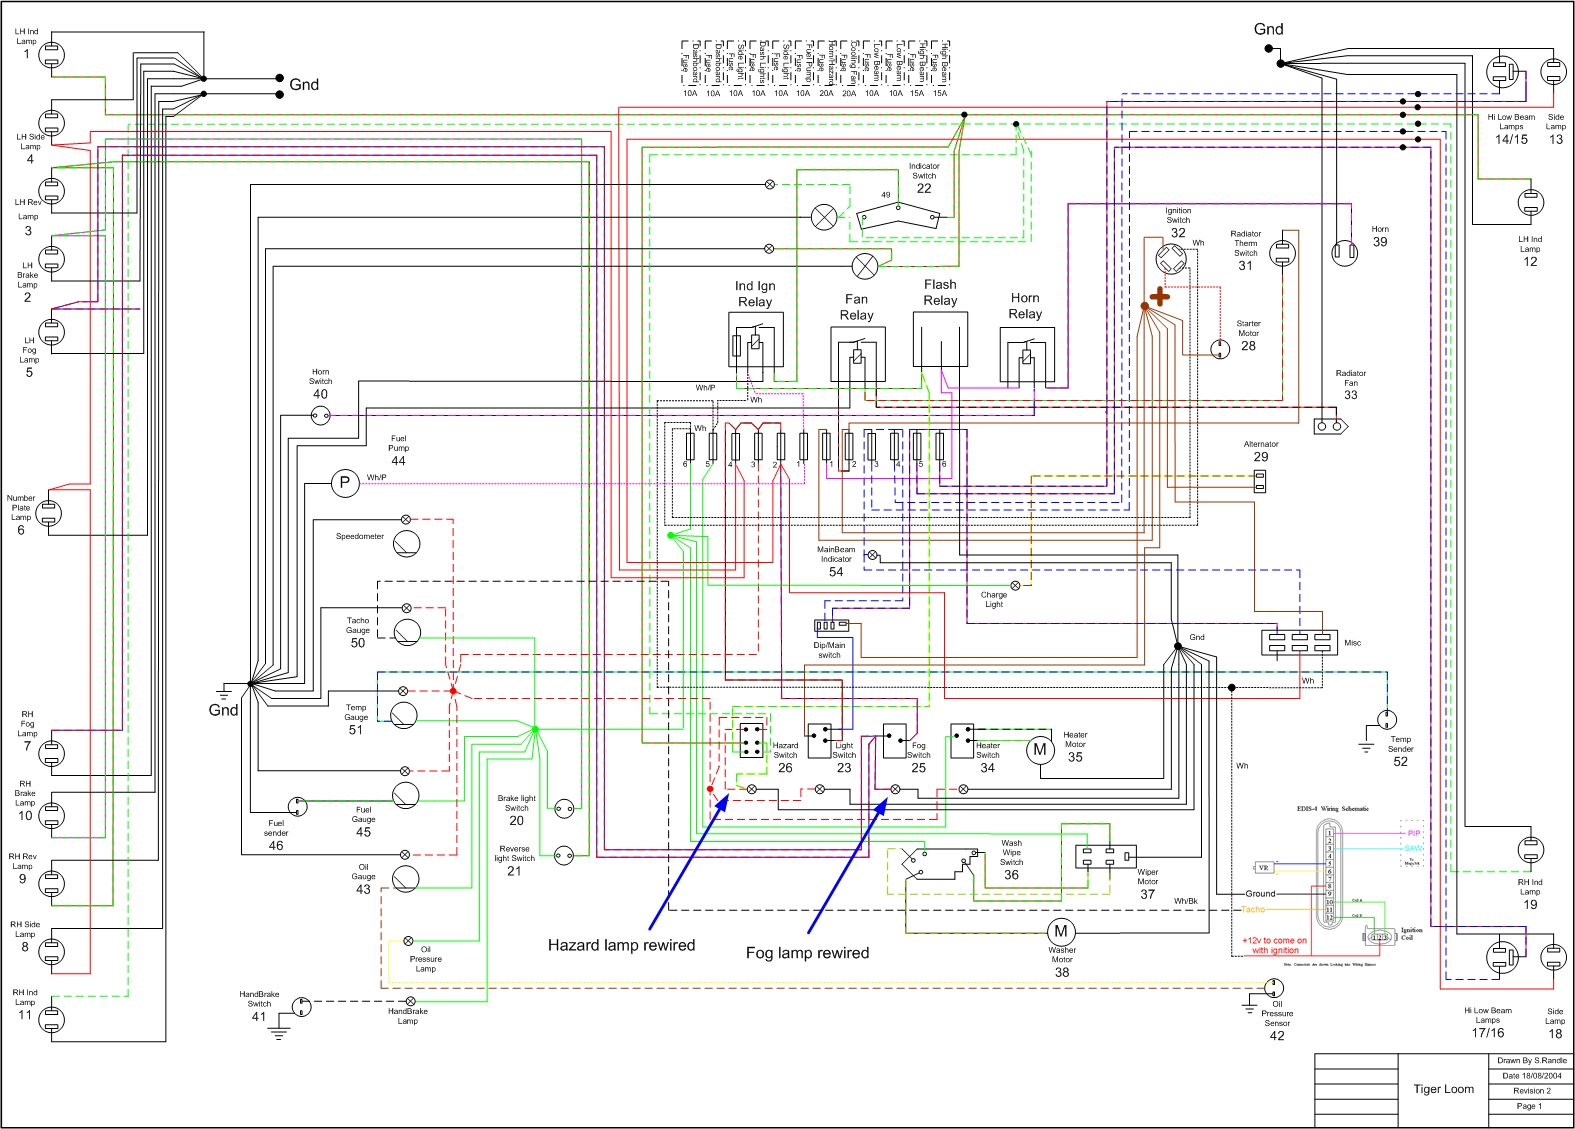 Electrical Wiring Diagram 2001 Yzf R6 | Wiring Liry on